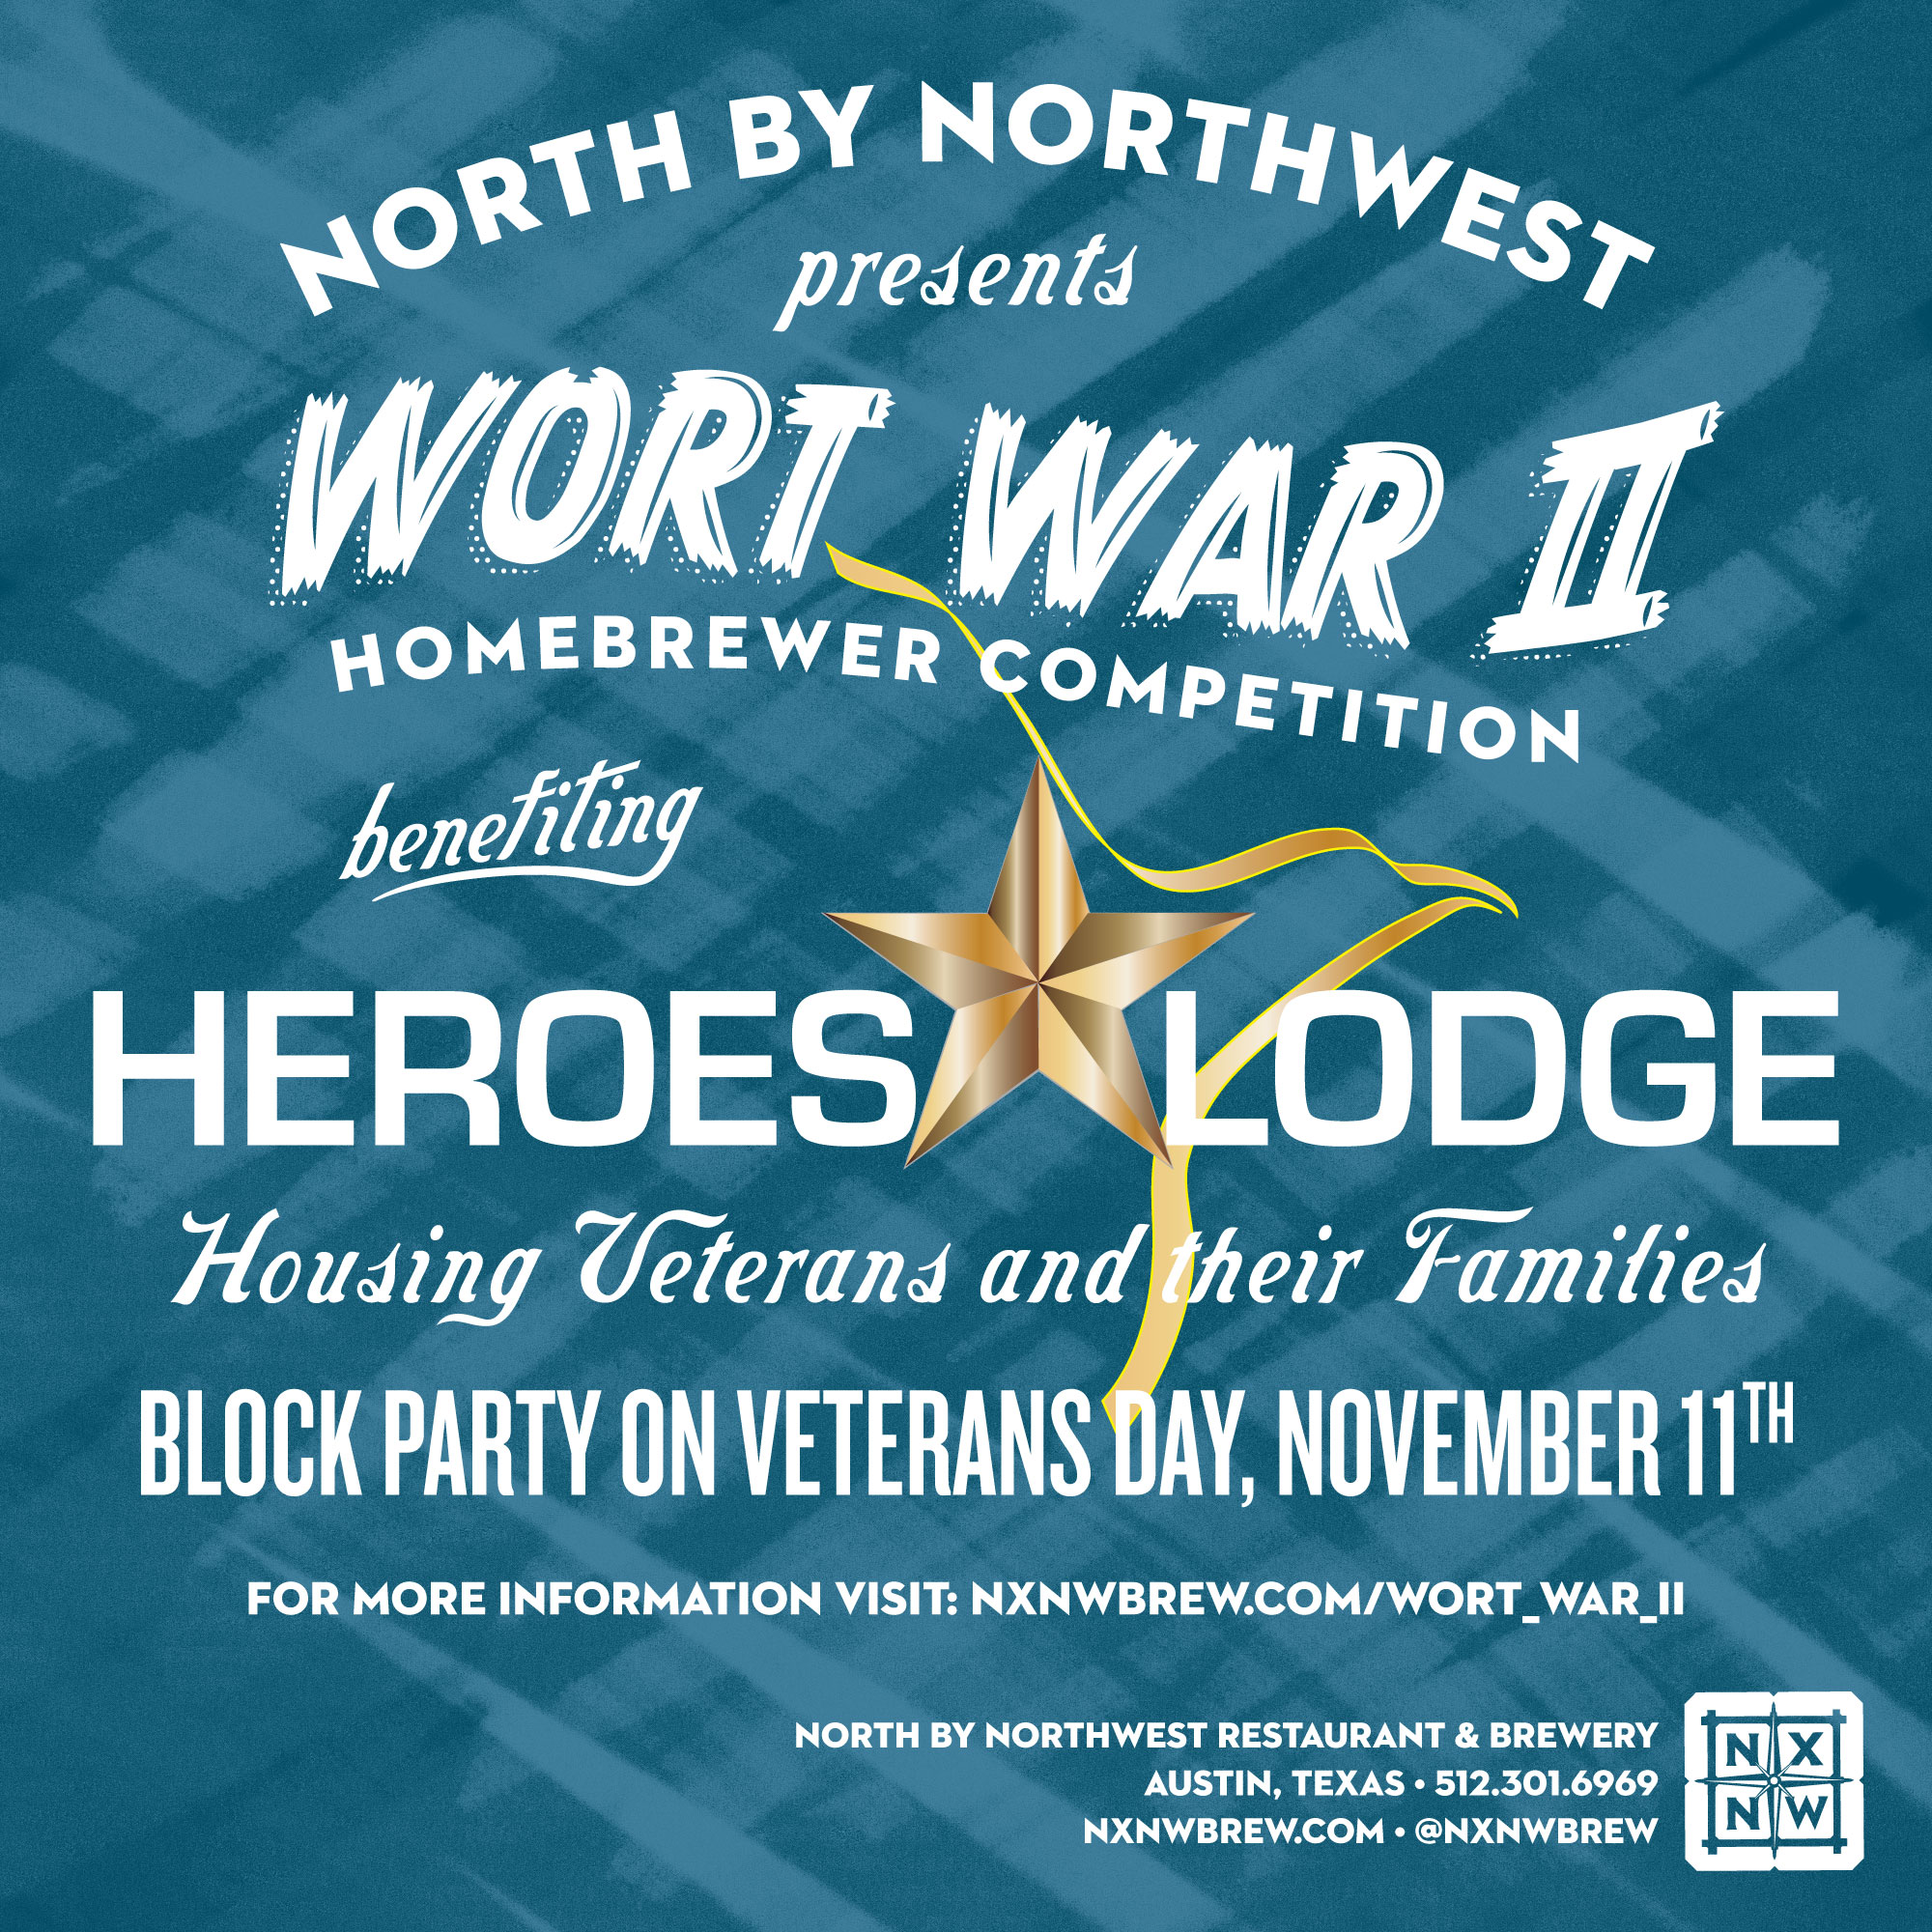 ALL VETERANS EAT FREE! Heroes Lodge will be conducting a raffle with some pretty amazing prizes including a Garrison Brothers Distillery whiskey barrel, 2 months membership for 2 people at HEAT Bootcamp, Cuban cigars and MUCH MORE!